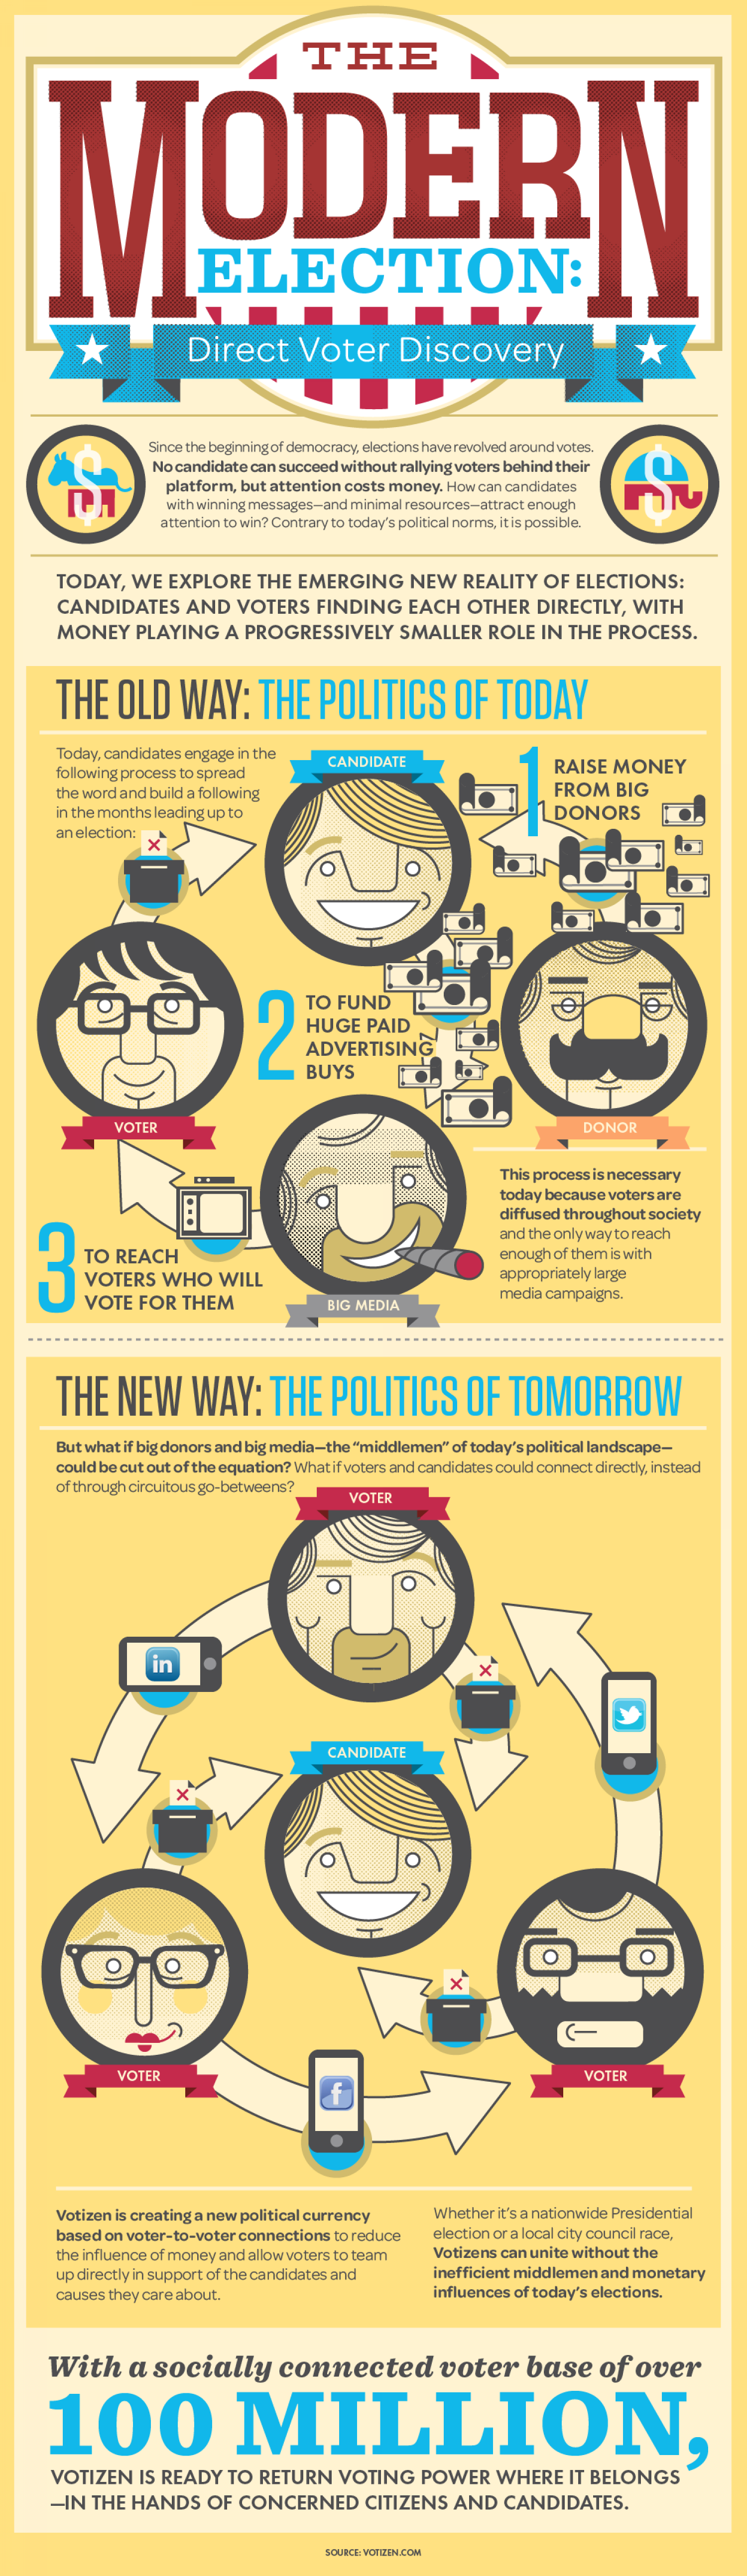 The Modern Election Infographic